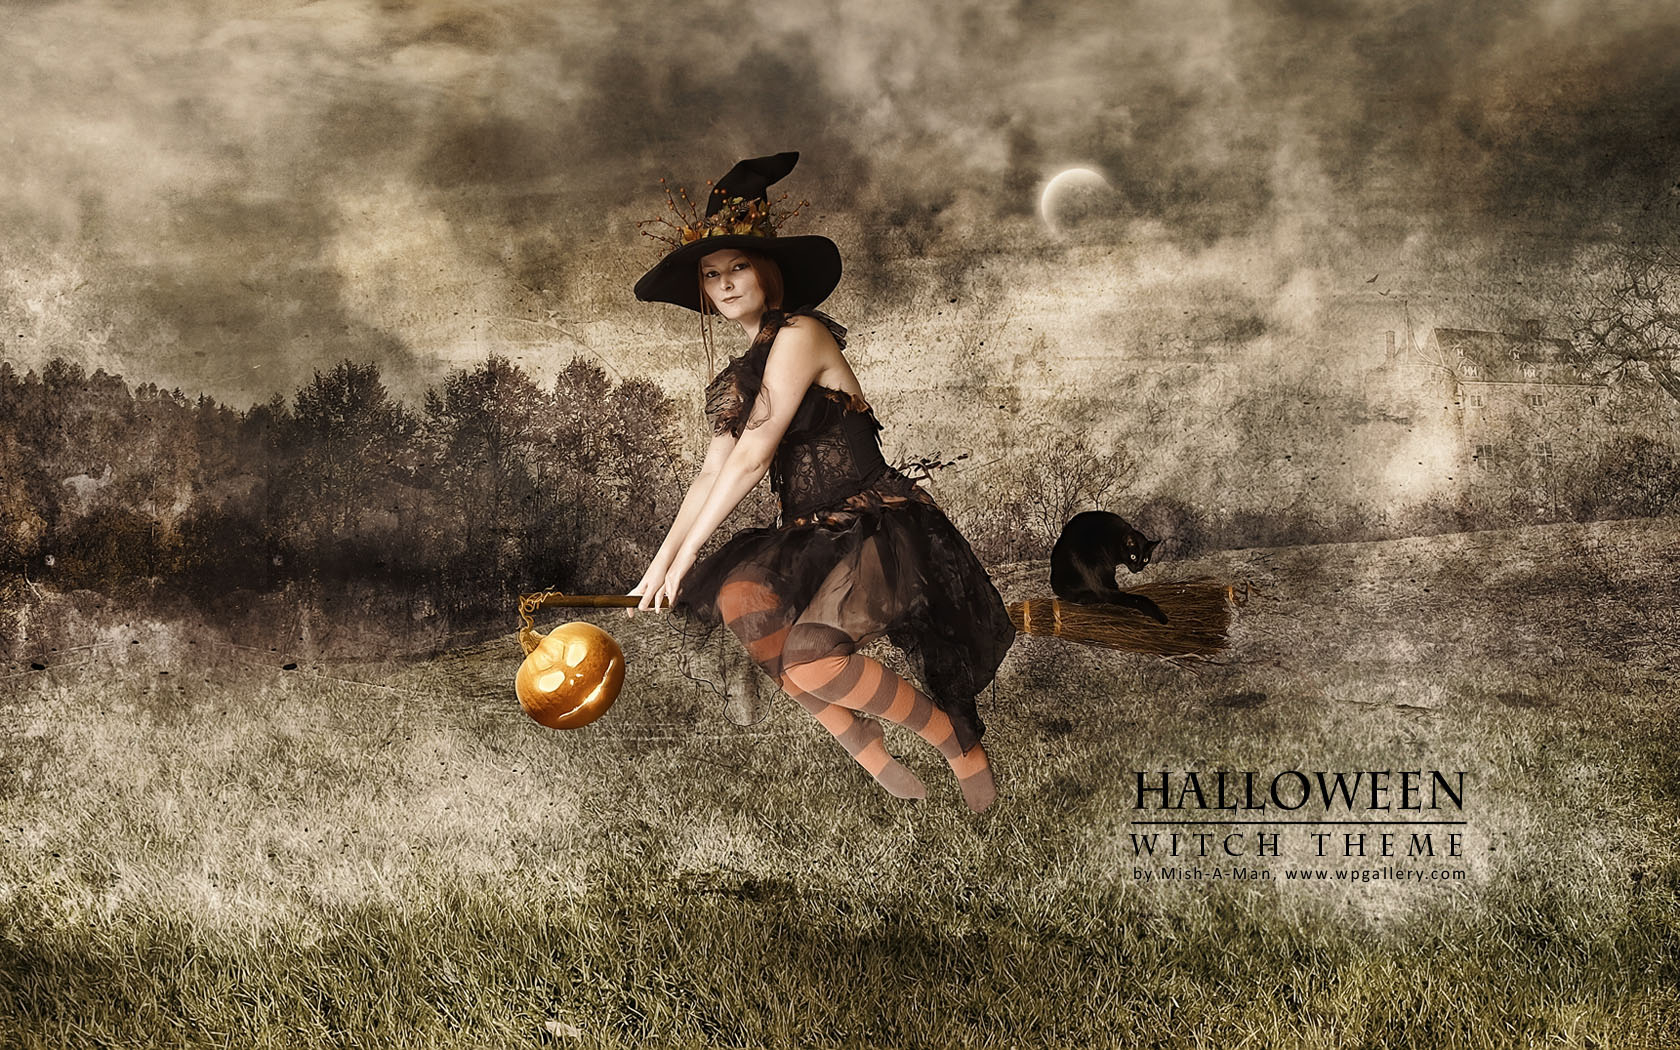 Halloween - Witch theme for 1680 x 1050 widescreen resolution